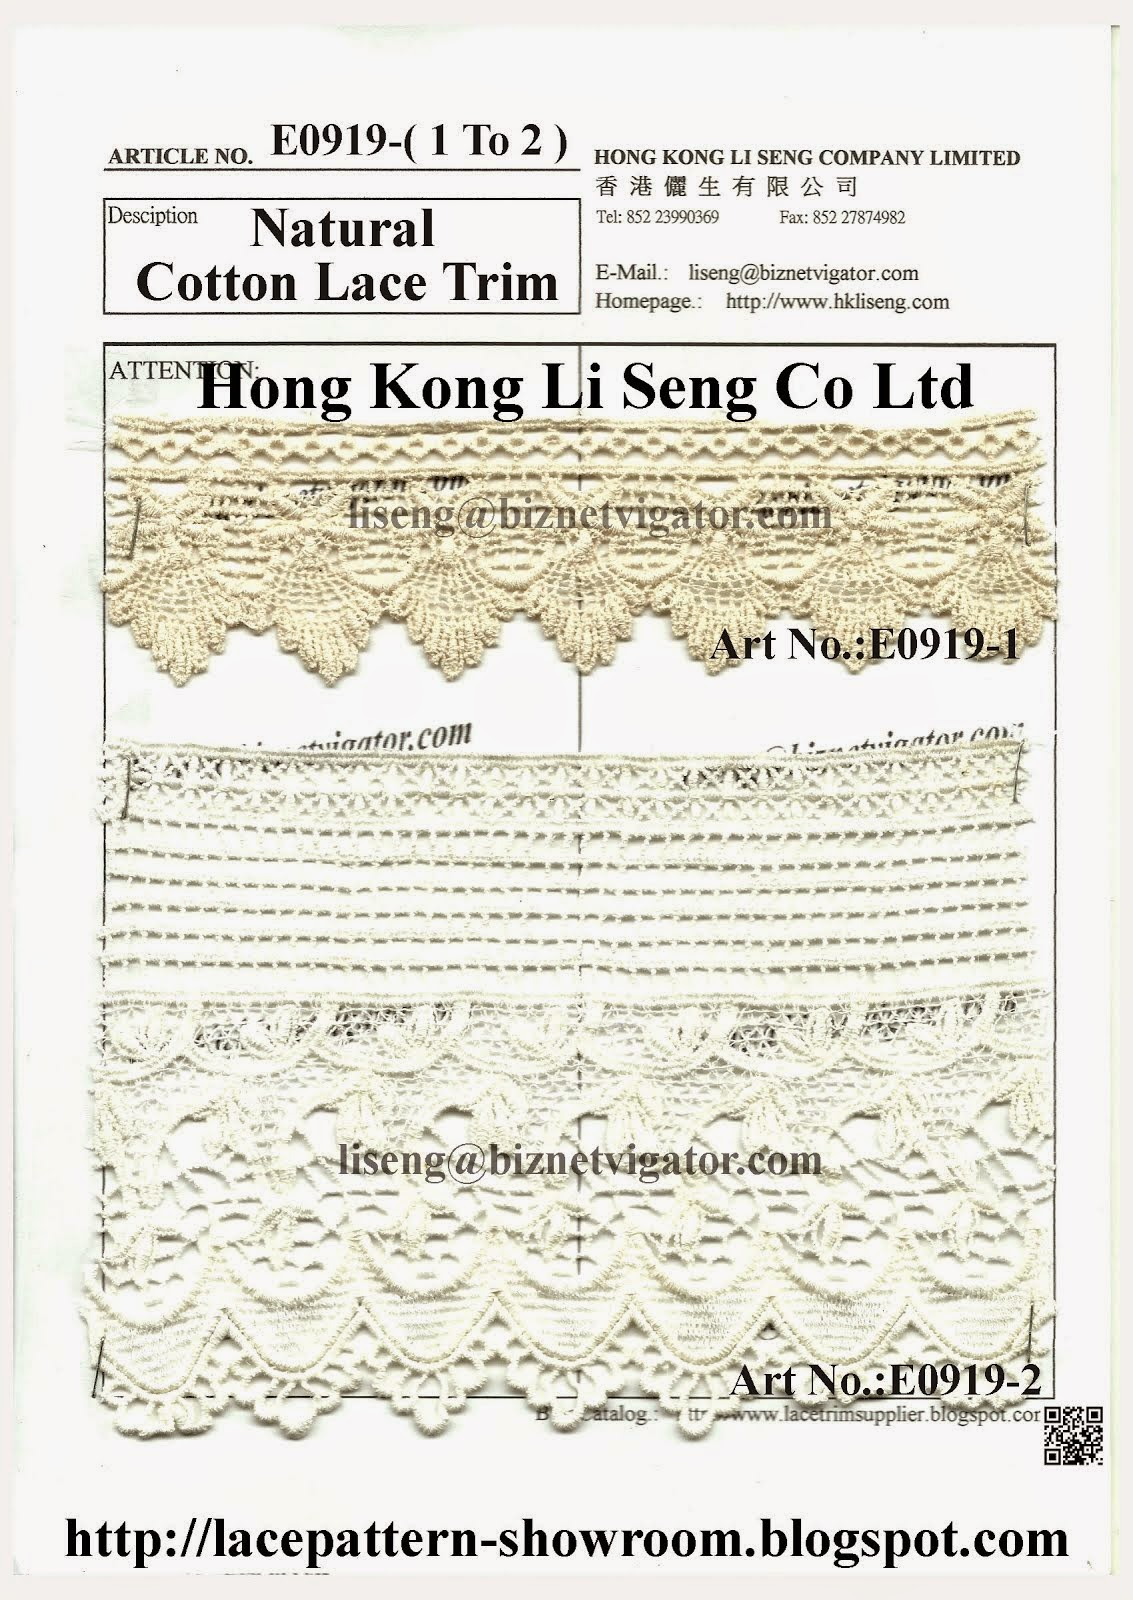 Natural Cotton Lace Trim Manufacturer Wholesaler Supplier - Hong Kong Li Seng Co Ltd